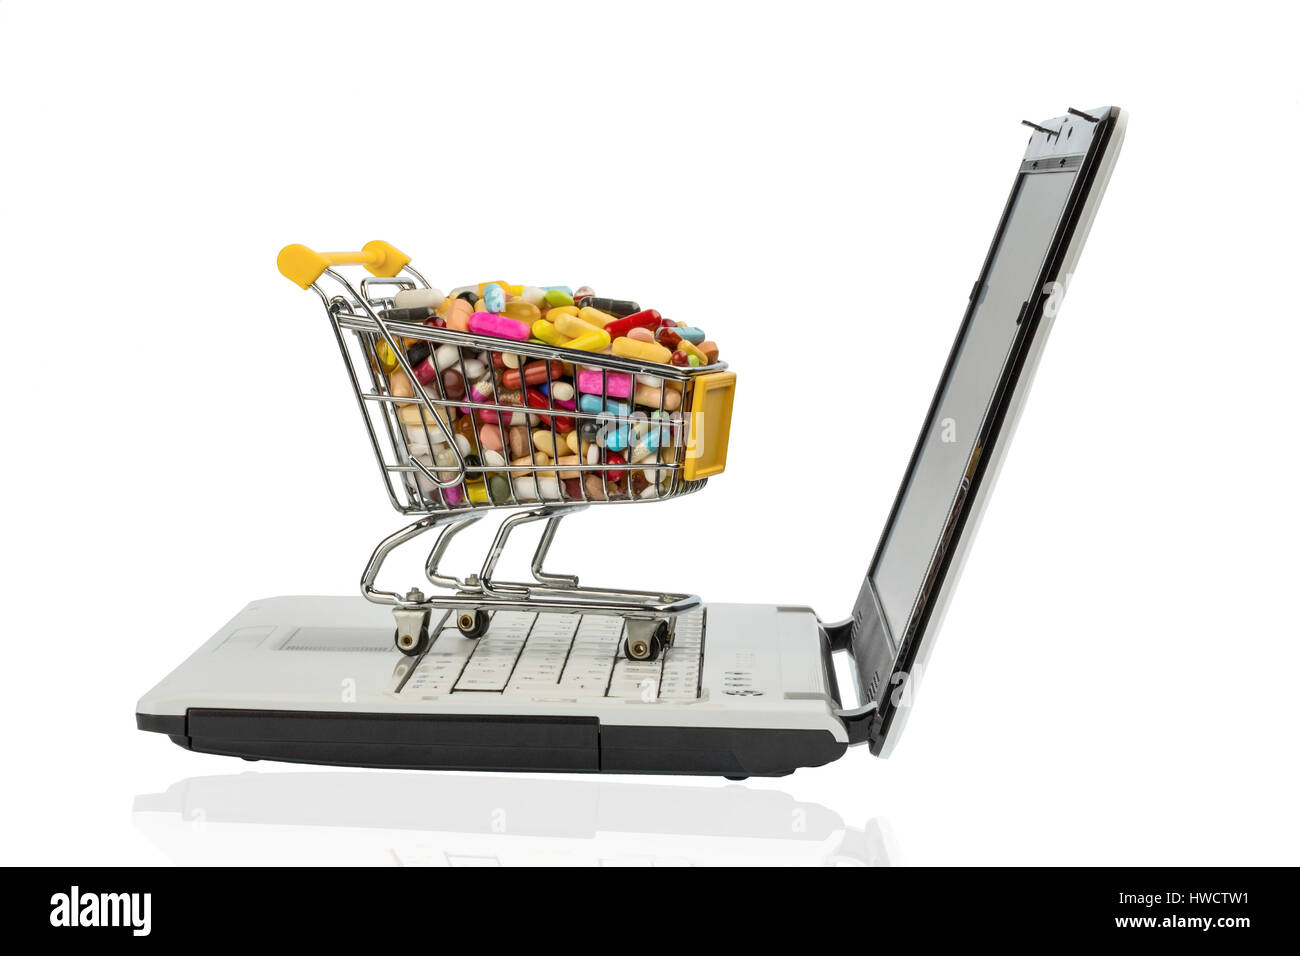 Tablets by shopping cart and computer. Symbolic photo for the purchase of drugs on the Internet, Tabletten mit Einkaufswagen - Stock Image